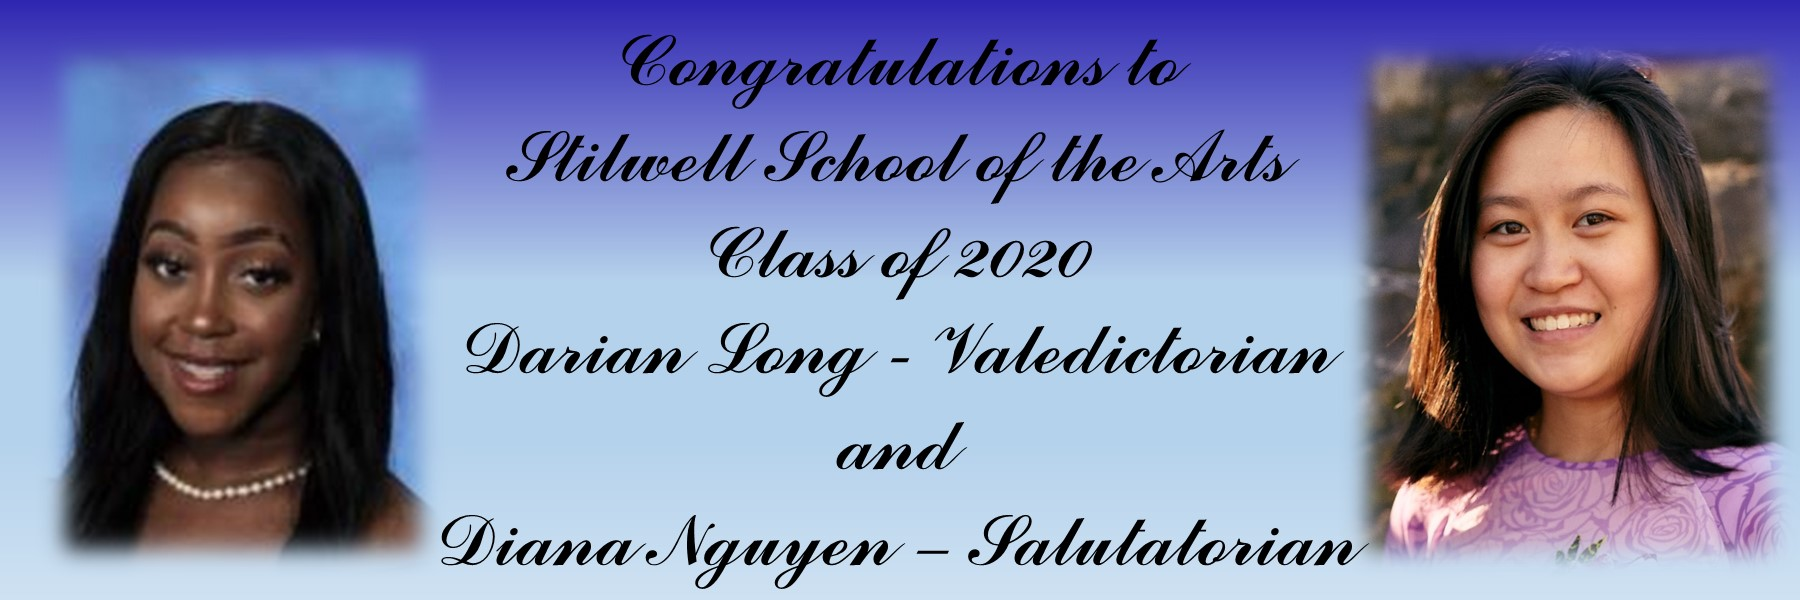 Class of 2020 Val and Sal